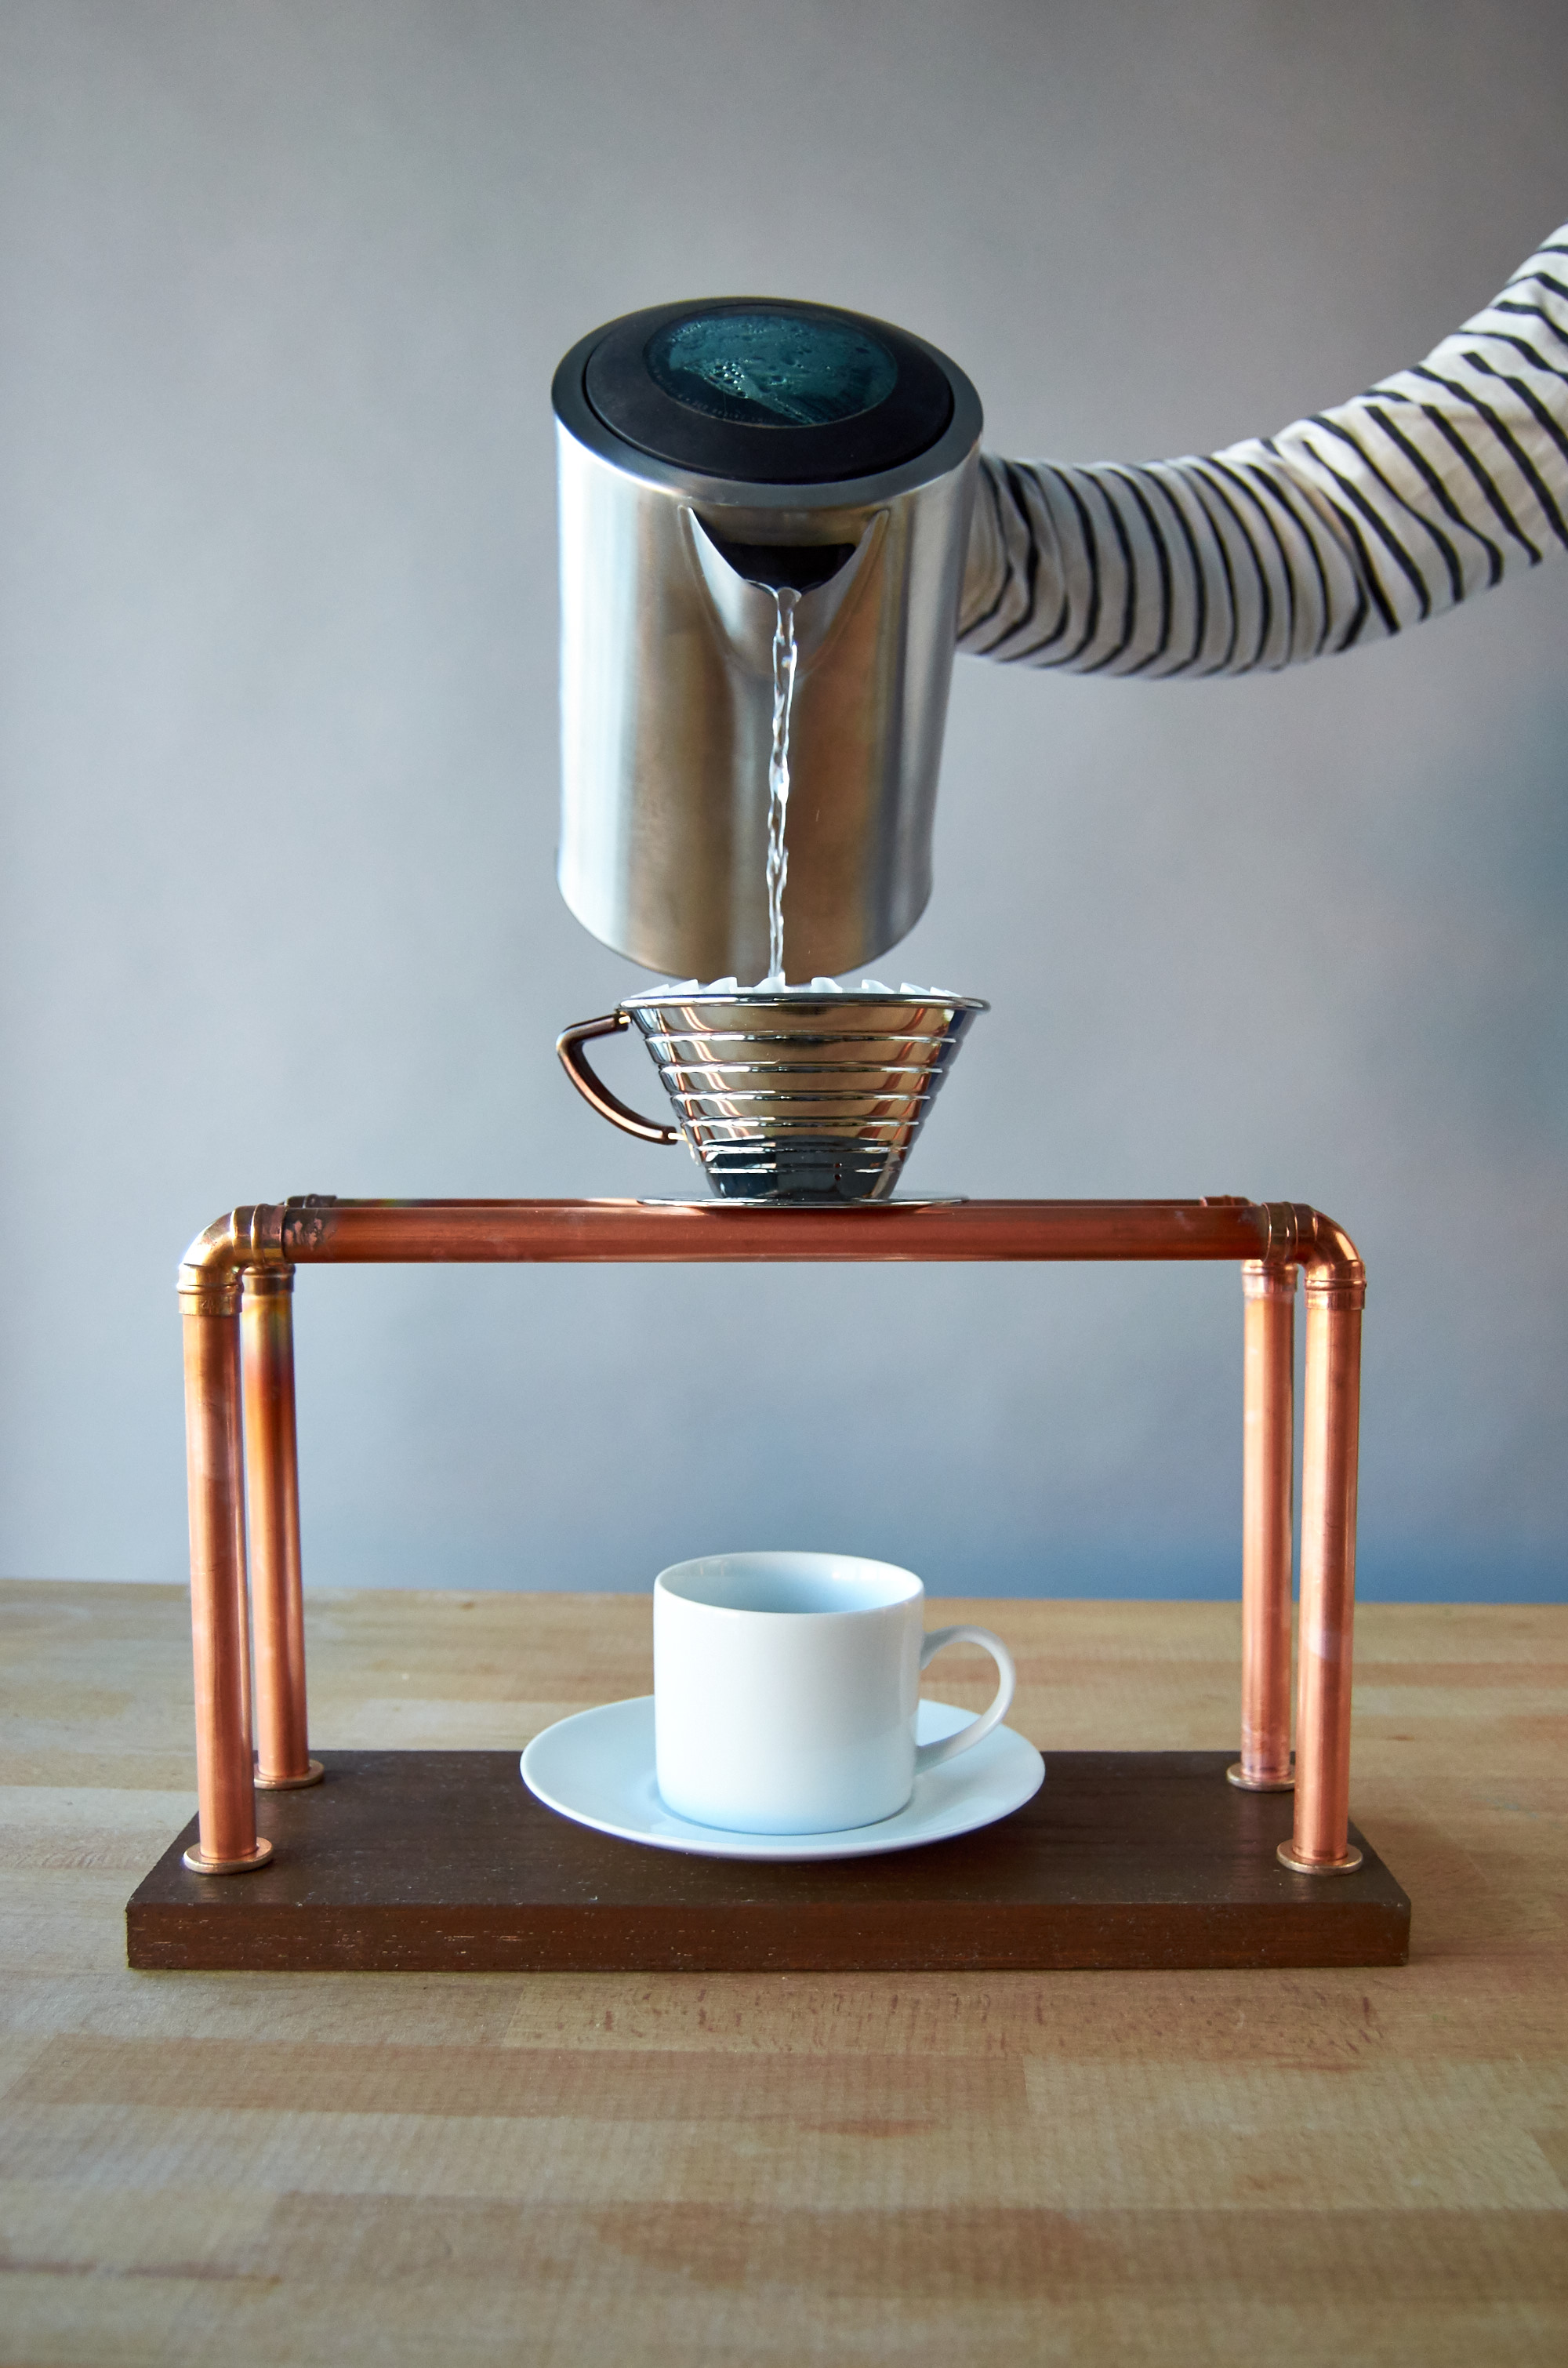 making a diy pour over coffee stand for fun and profit man made diy crafts for men. Black Bedroom Furniture Sets. Home Design Ideas